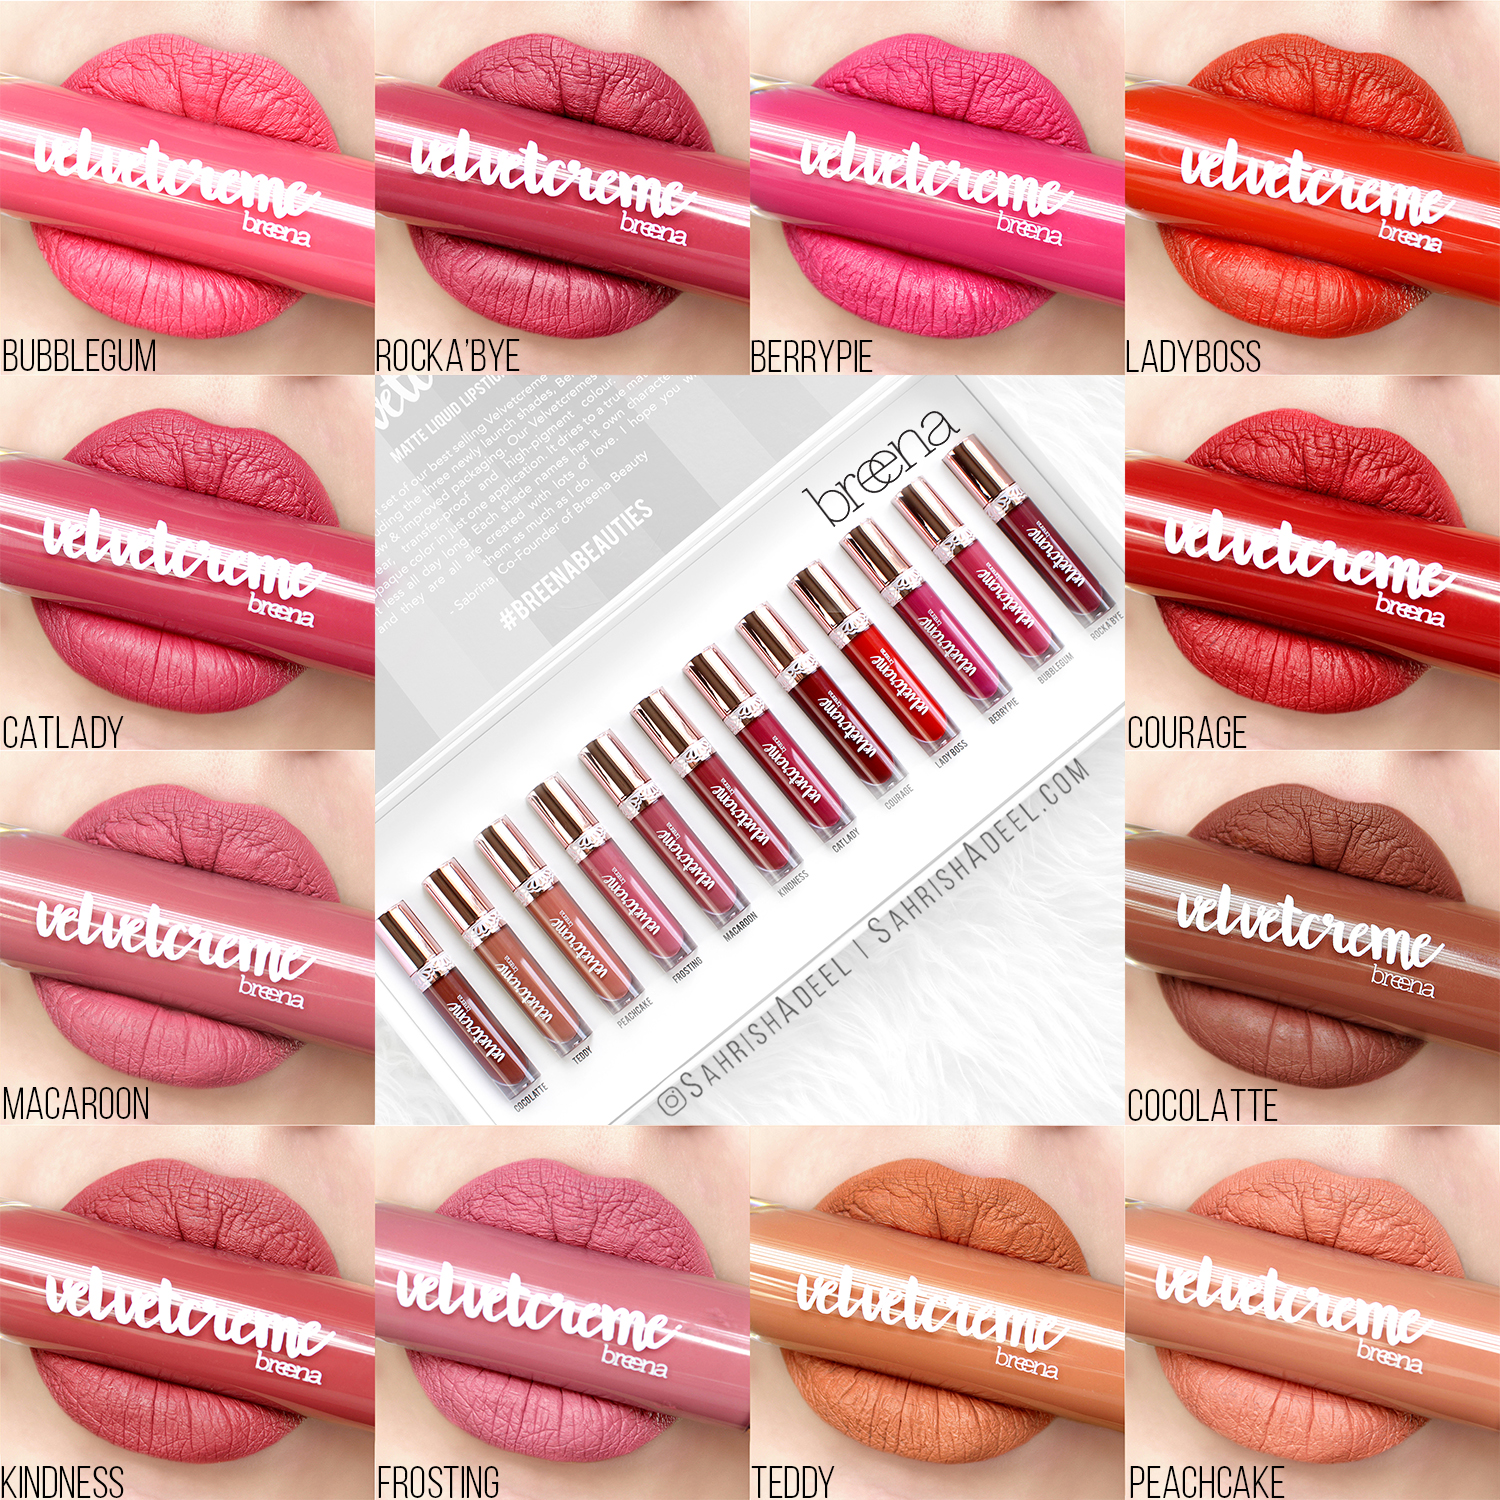 Velvet Creme Matte Liquid Lipsticks by Breena Beauty - Review & Lip Swatches